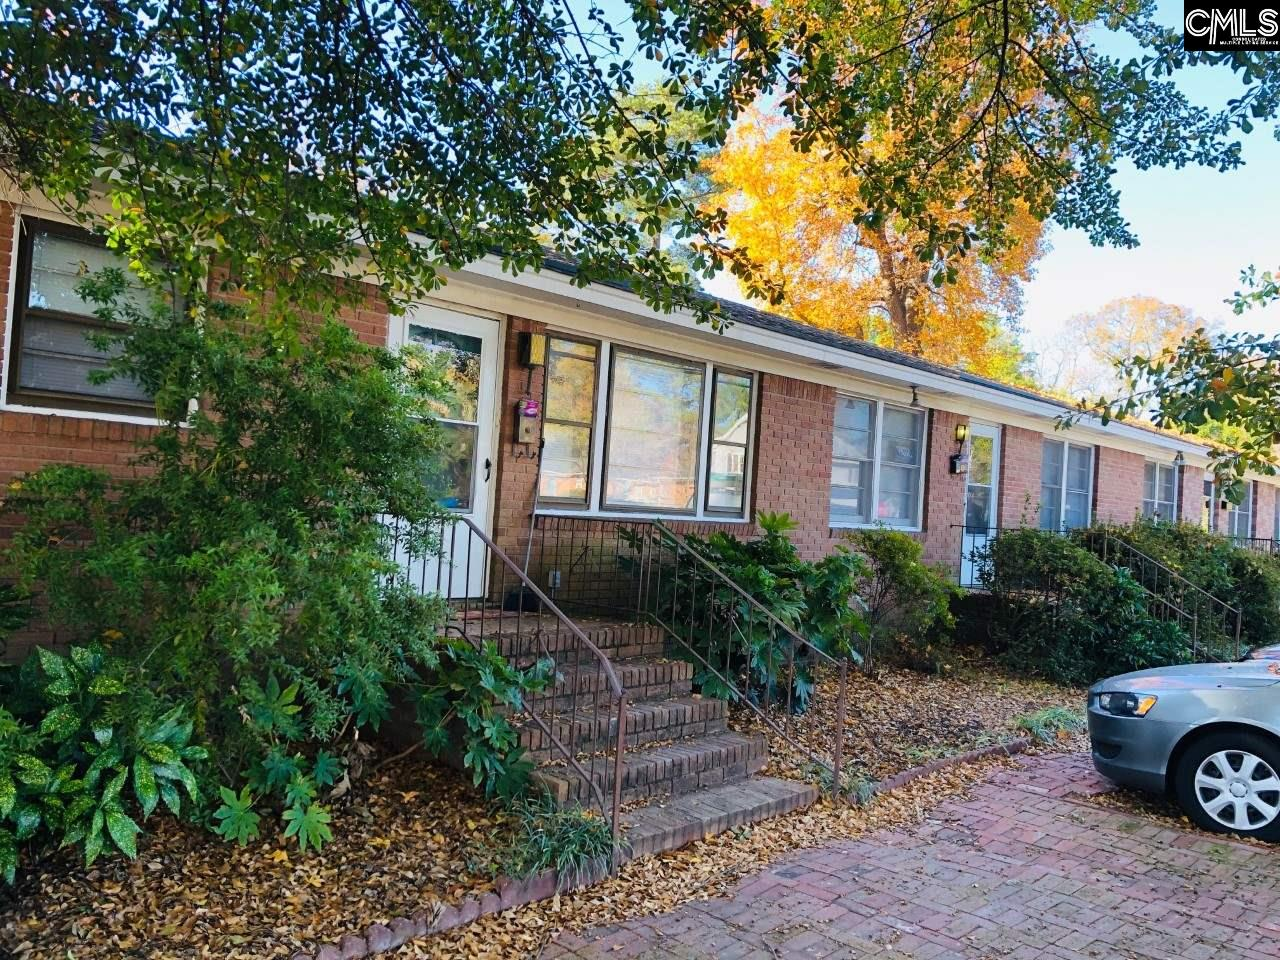 300-306 S Marble West Columbia, SC 29169